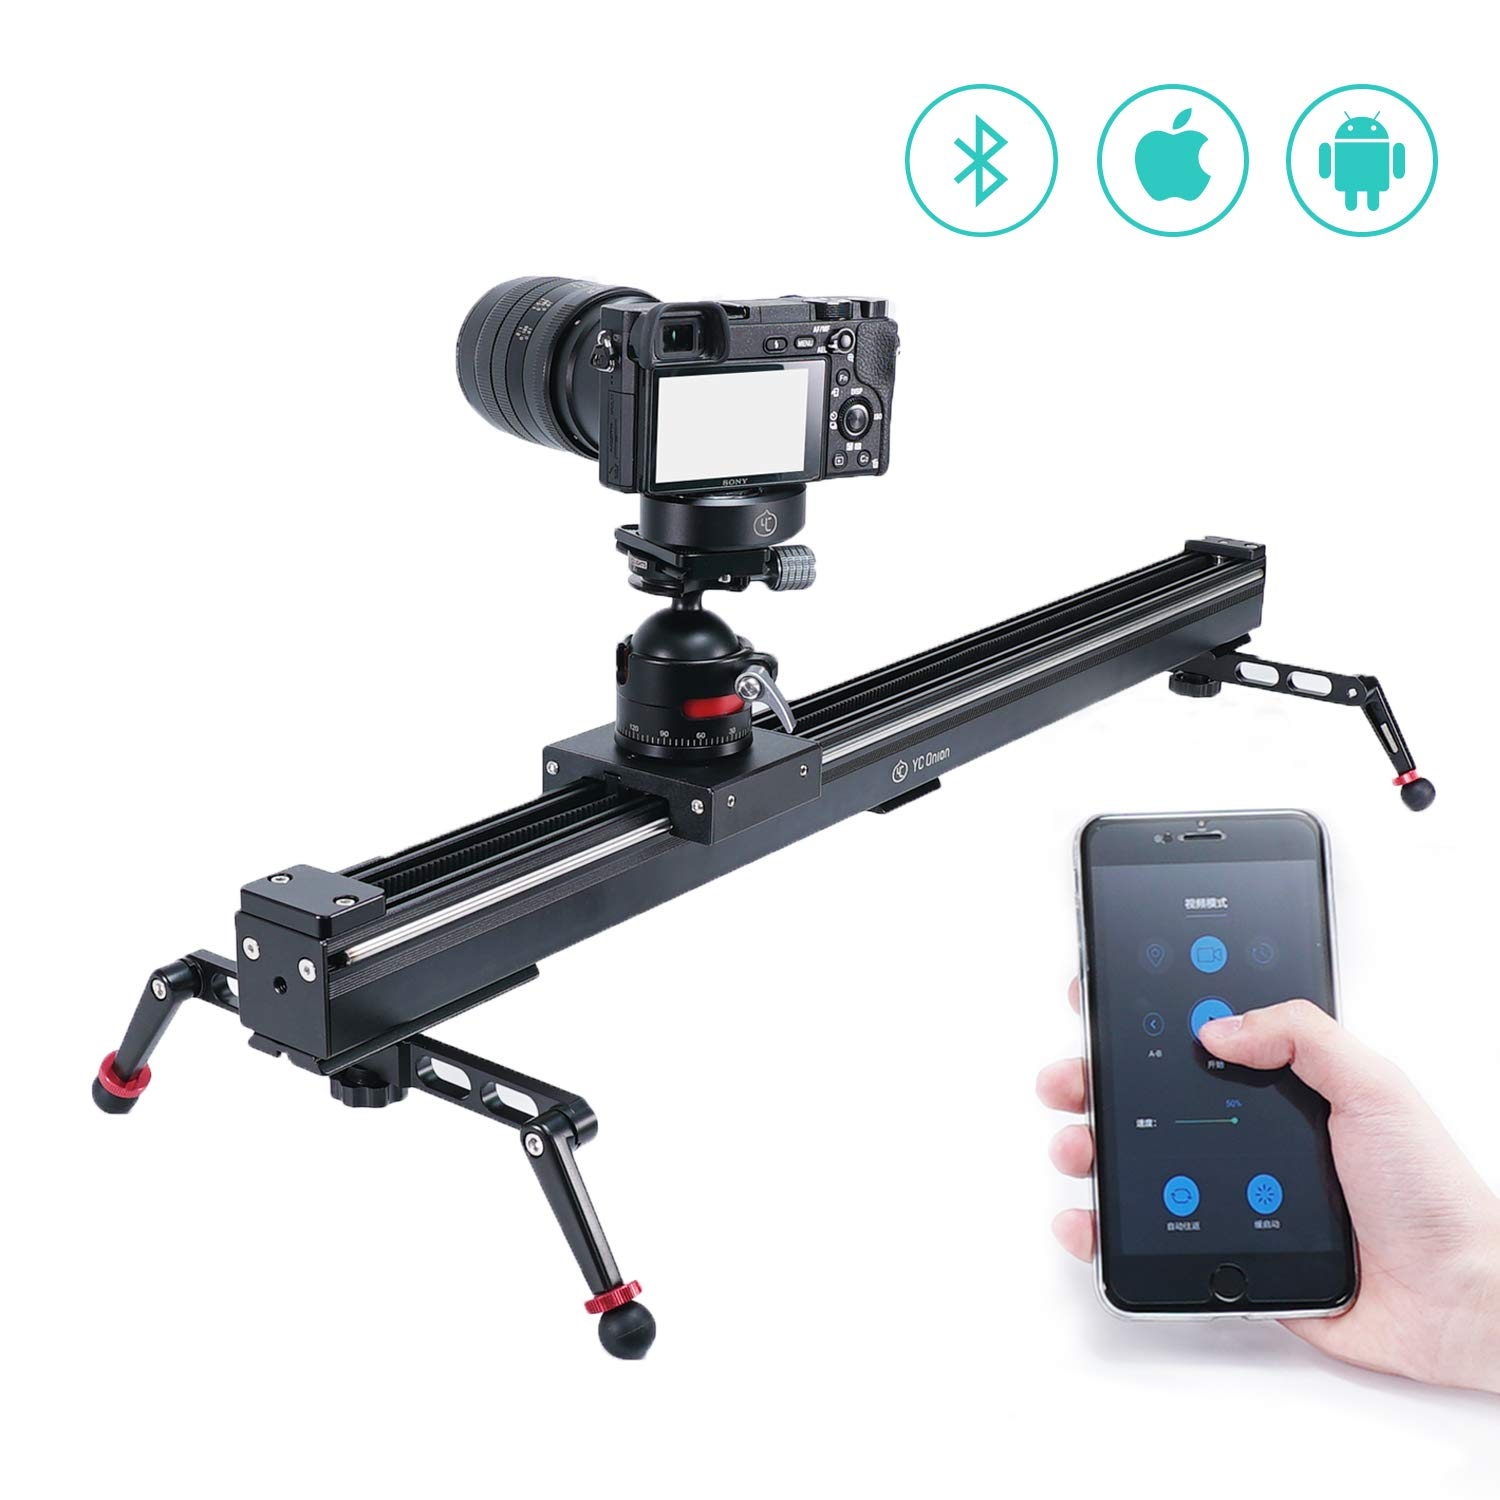 Camera Slider Motorized Set Aluminum Alloy Dolly Rail for Camera DSLR MILC Time Lapse and Video Shot 39.4in/100cm - by YC Onion by YC Onion